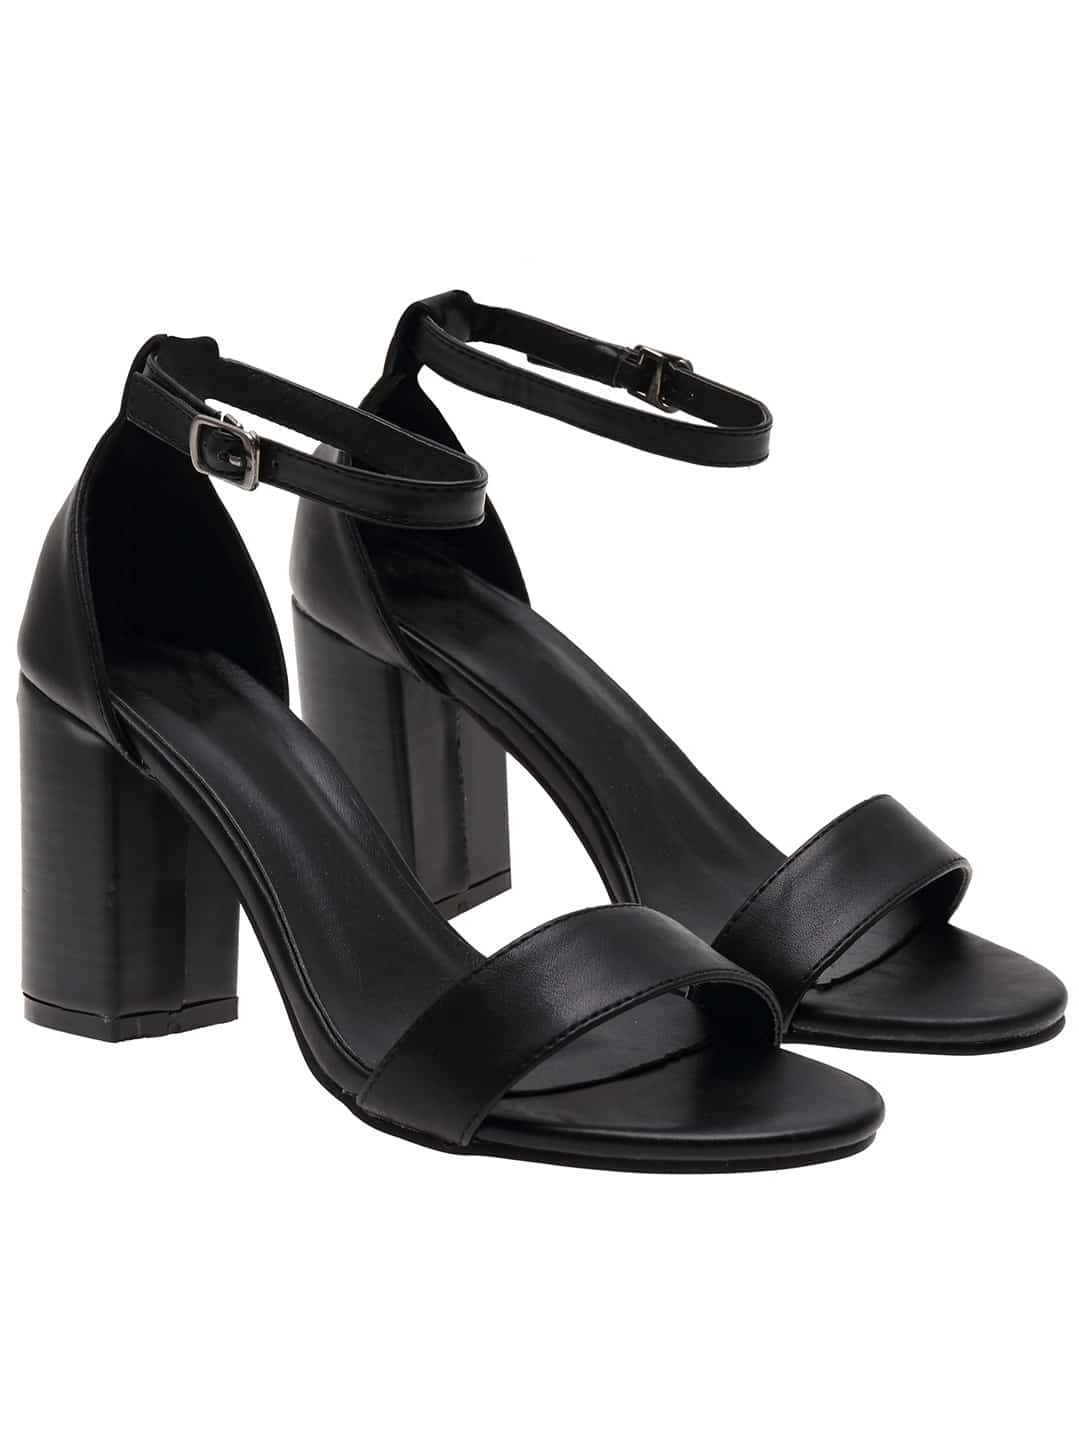 Michael Kors Guiliana Mid Ankle Strap Women's Heels. Free Shipping and Easy Returns.